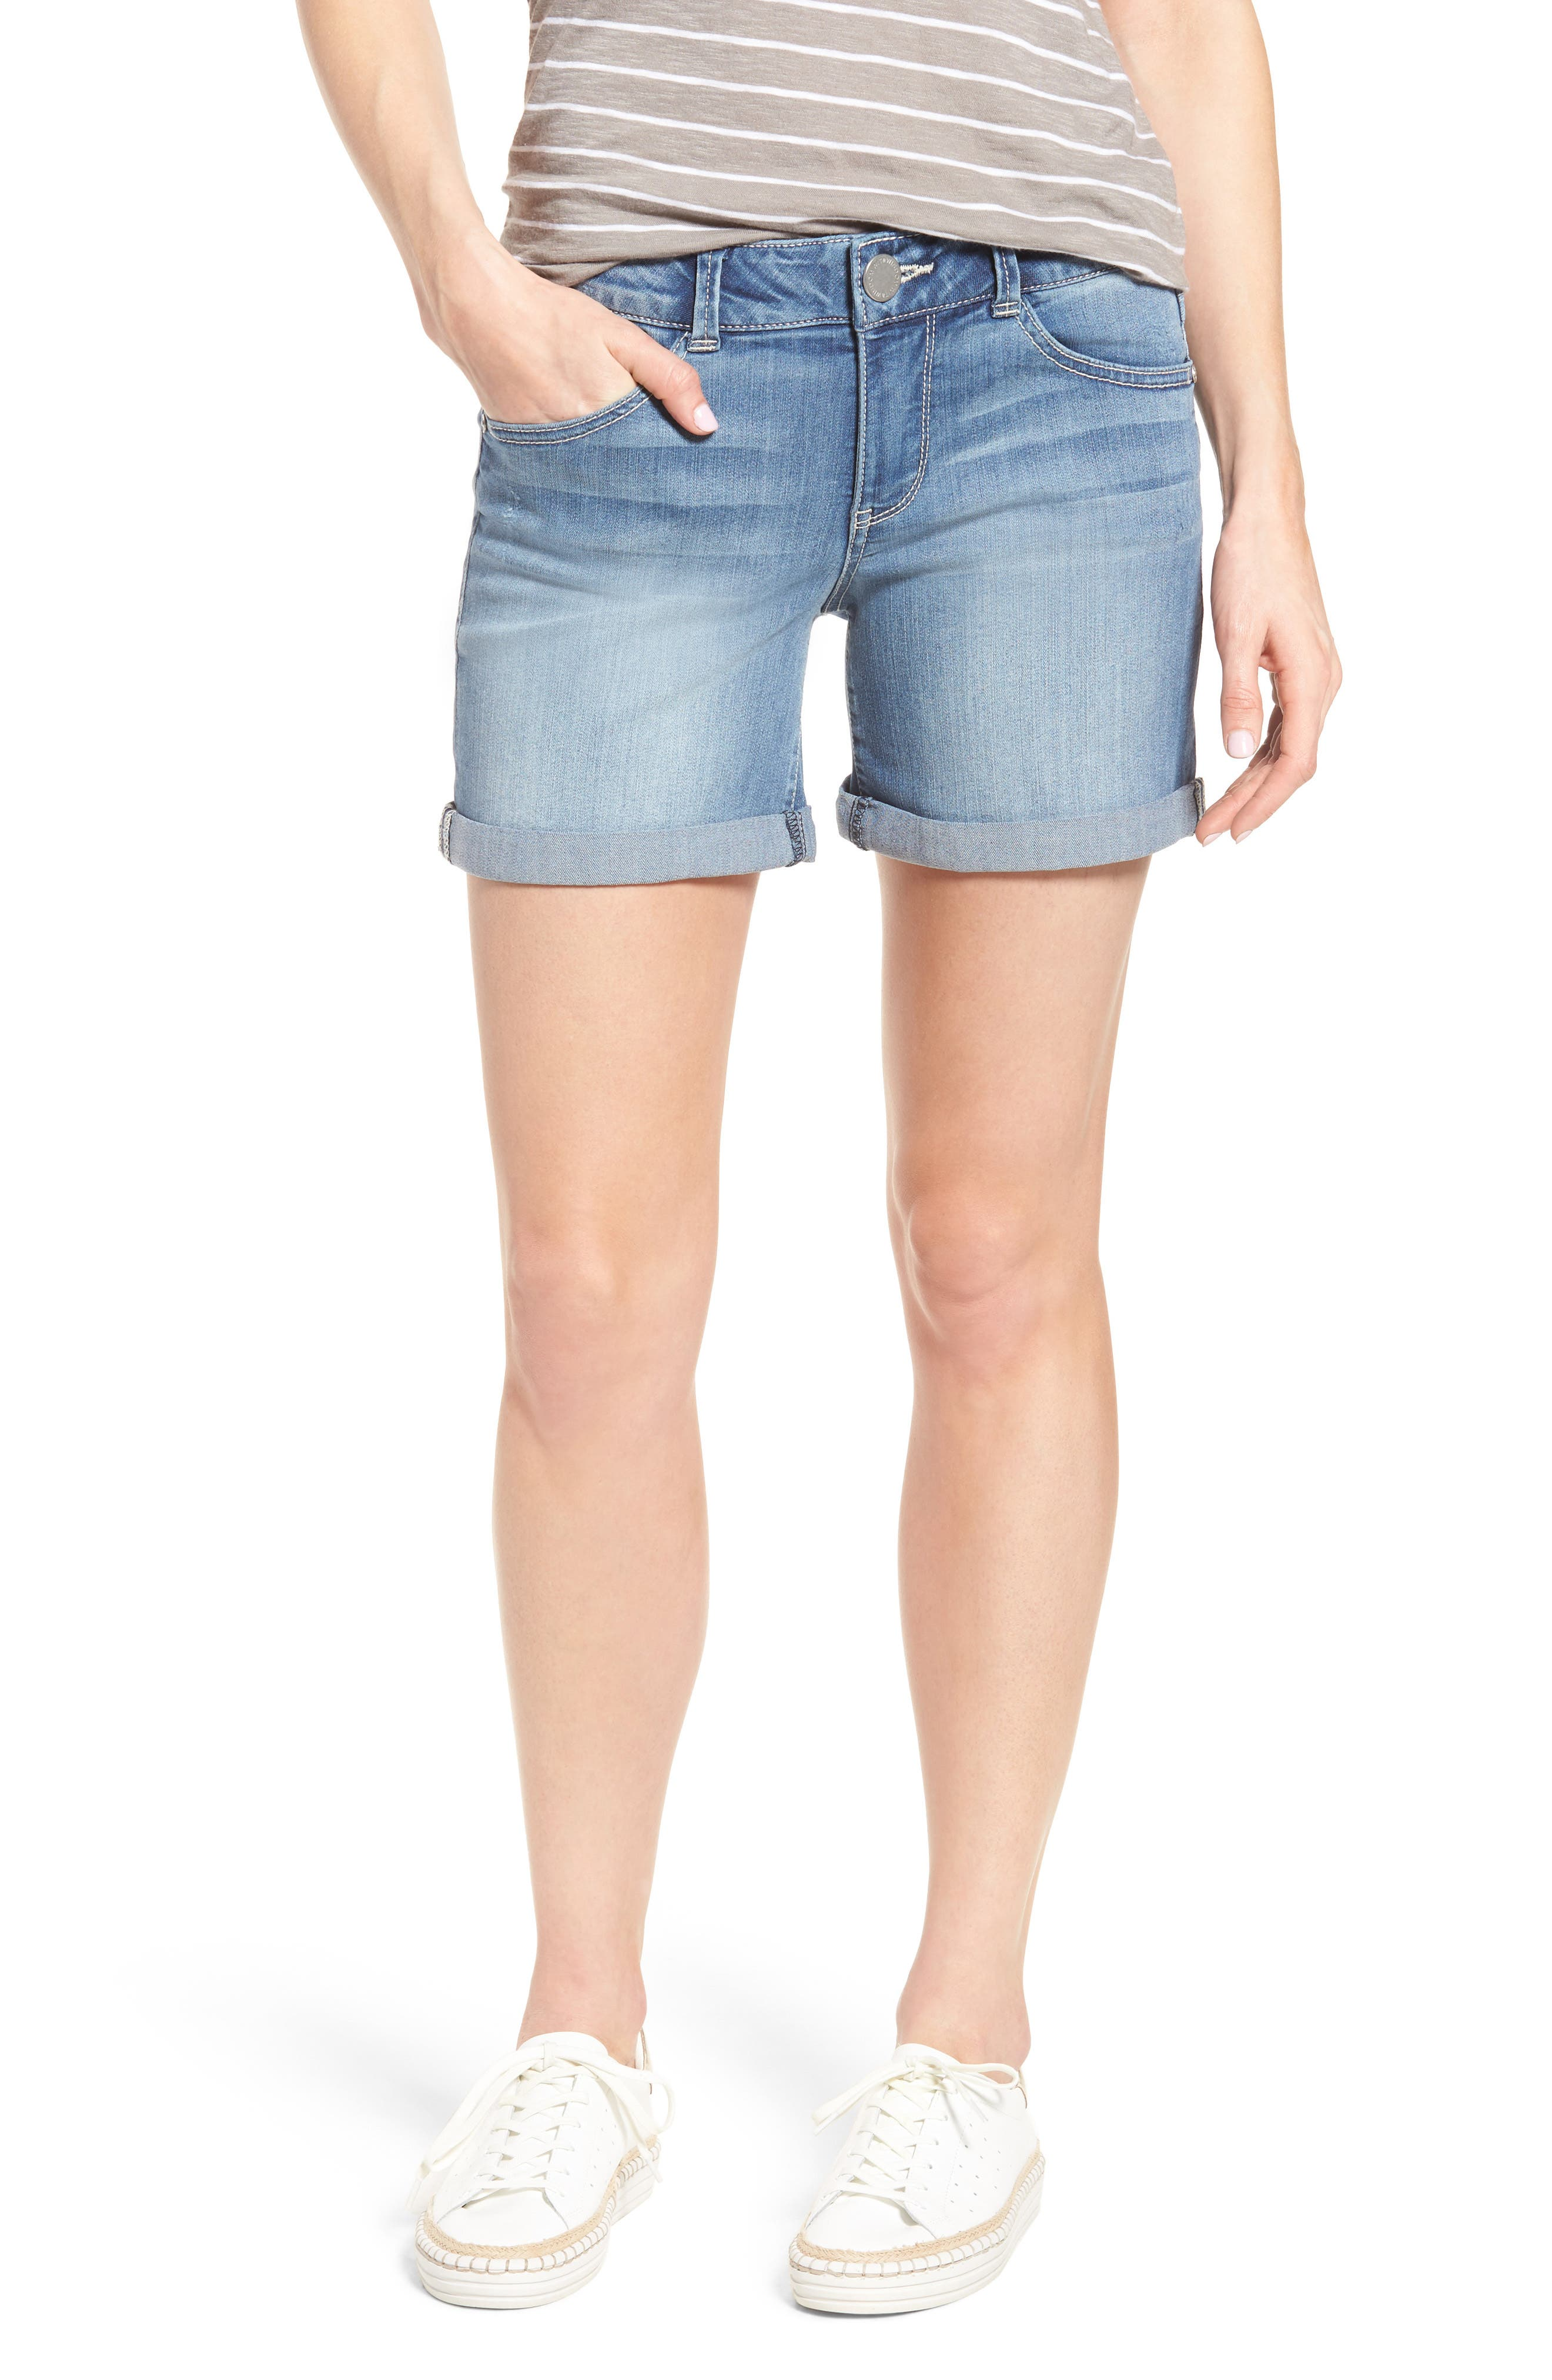 Wit & Wisdom Ab-solution Cuffed Denim Shorts (Regular & Petite) (Nordstrom Exclusive)